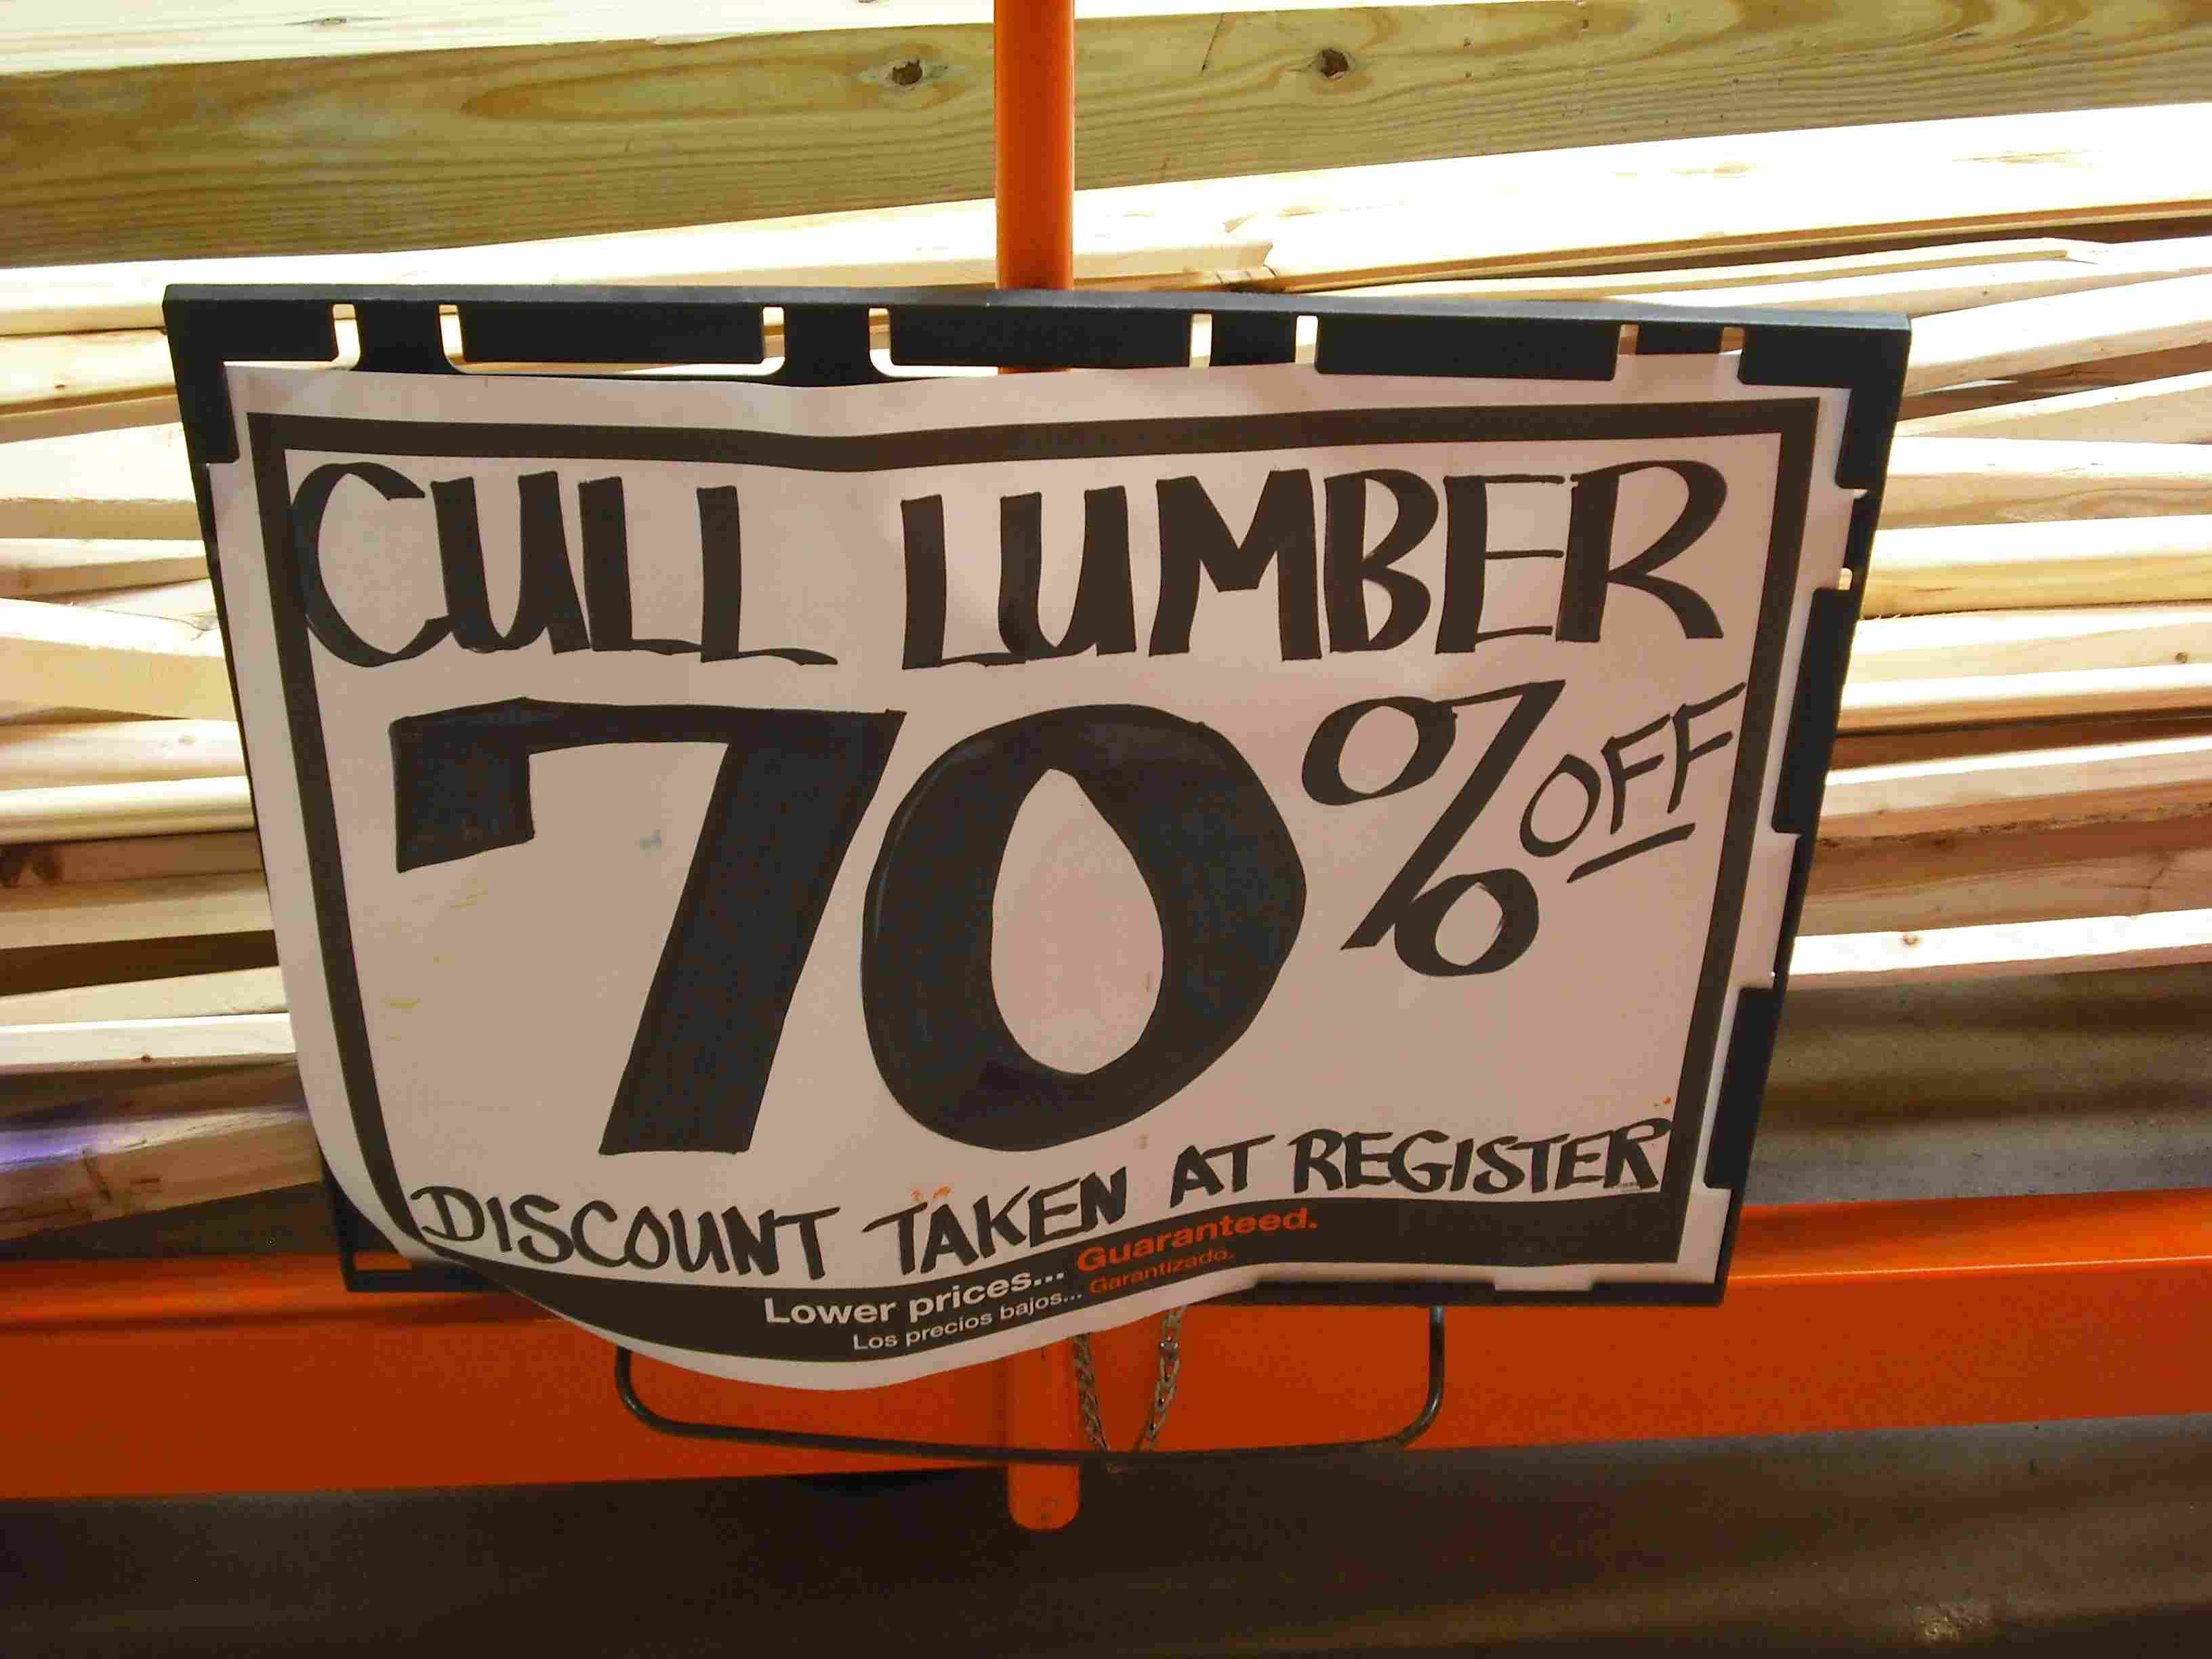 Cull lumber sign